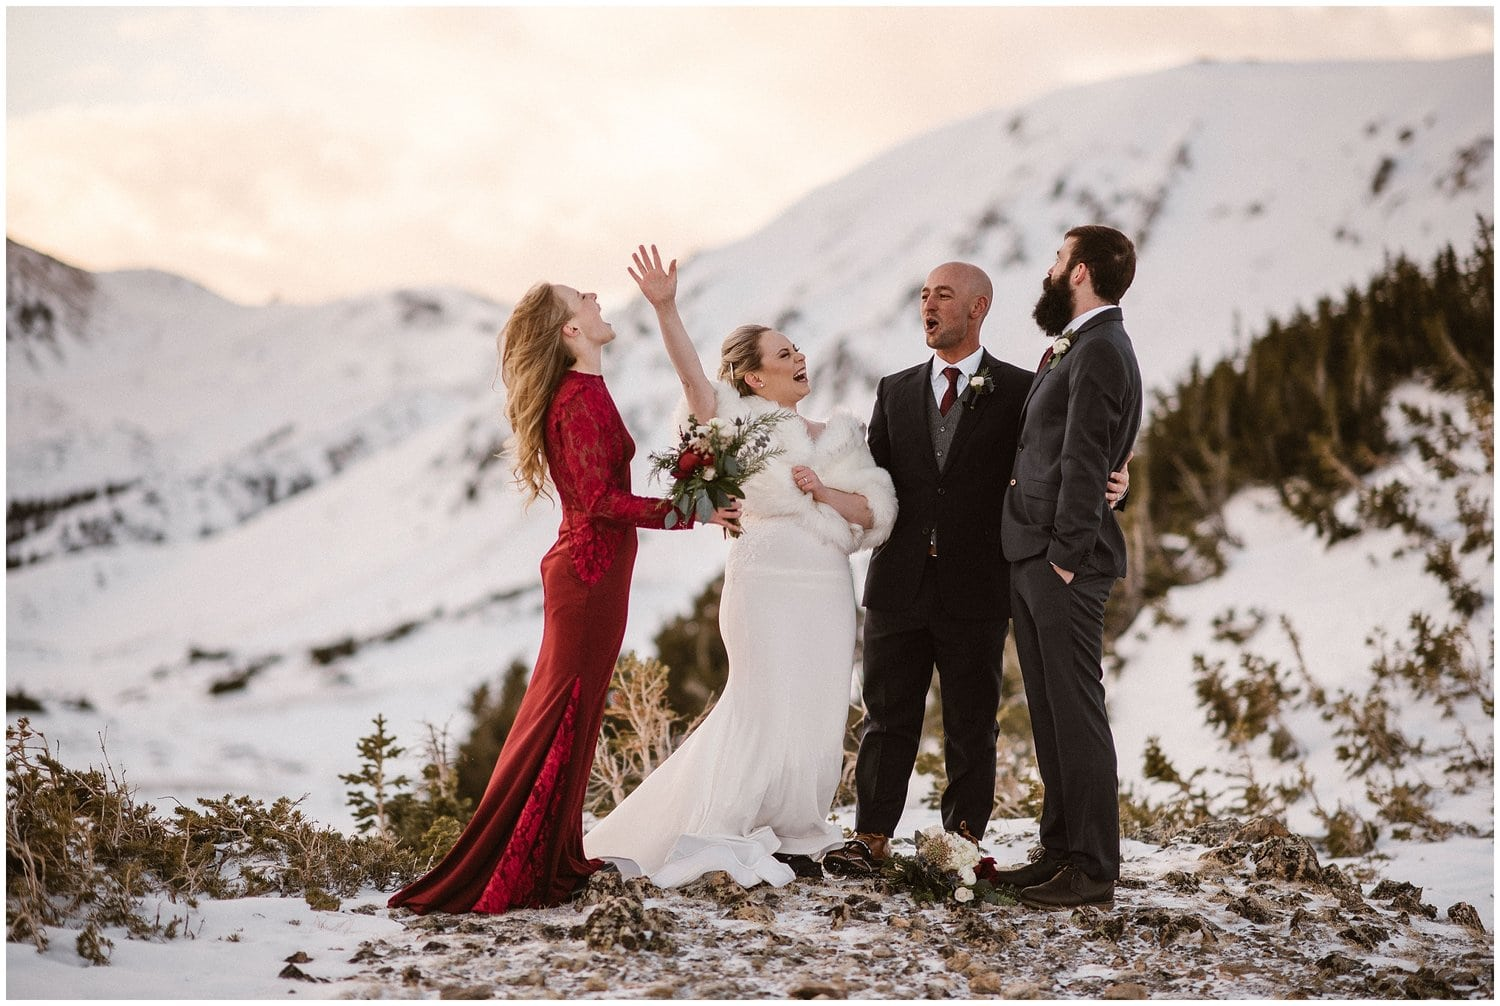 A bride and groom yell in the mountains while a woman and man stand by their side in the mountains.